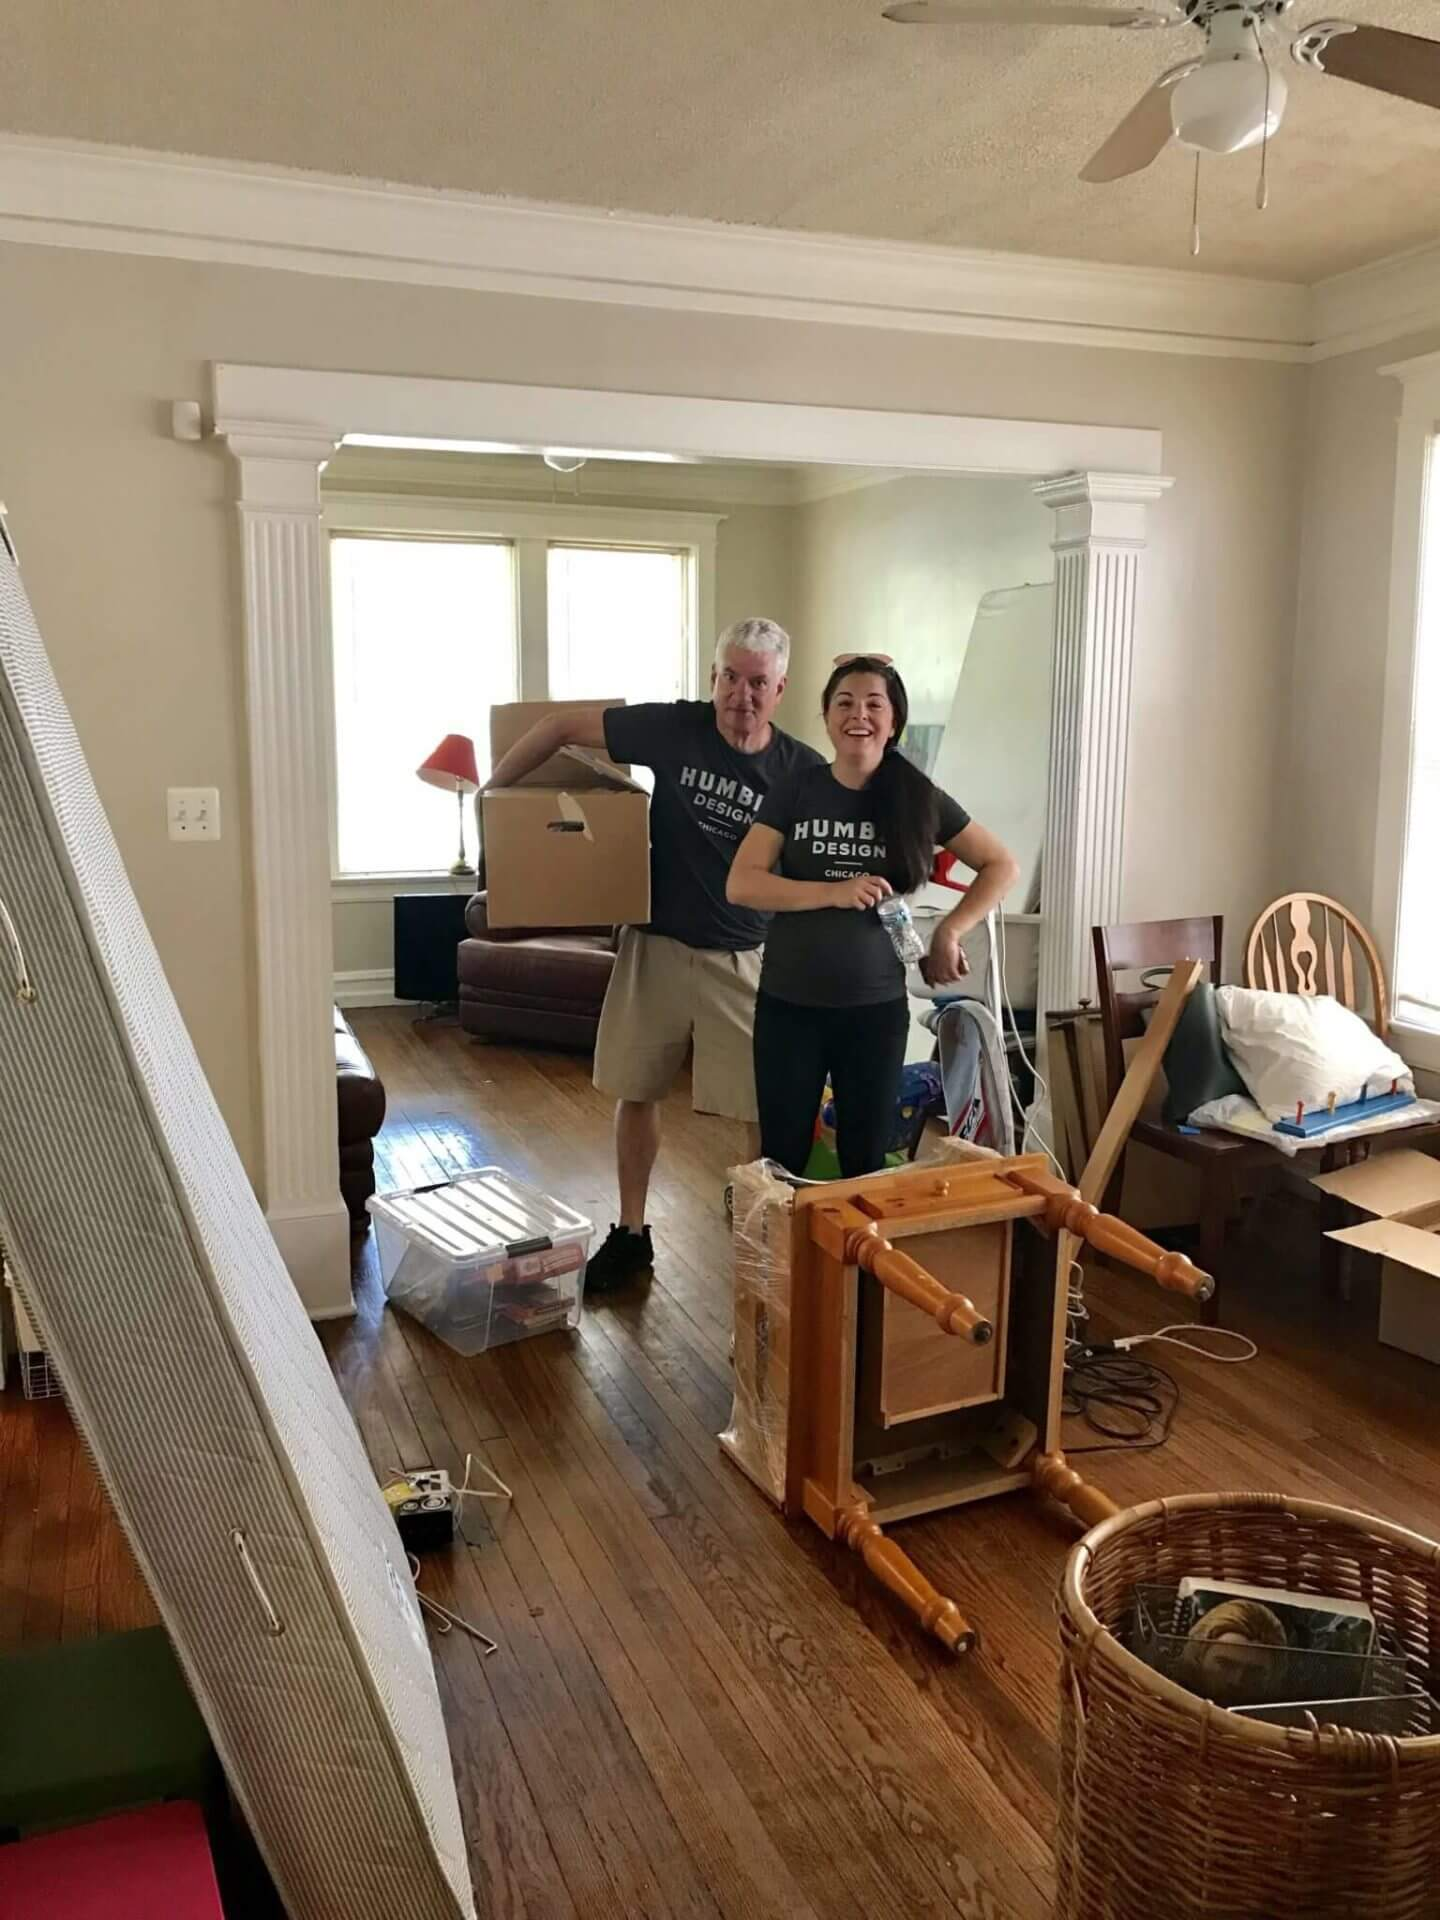 Volunteers moving furniture into new home